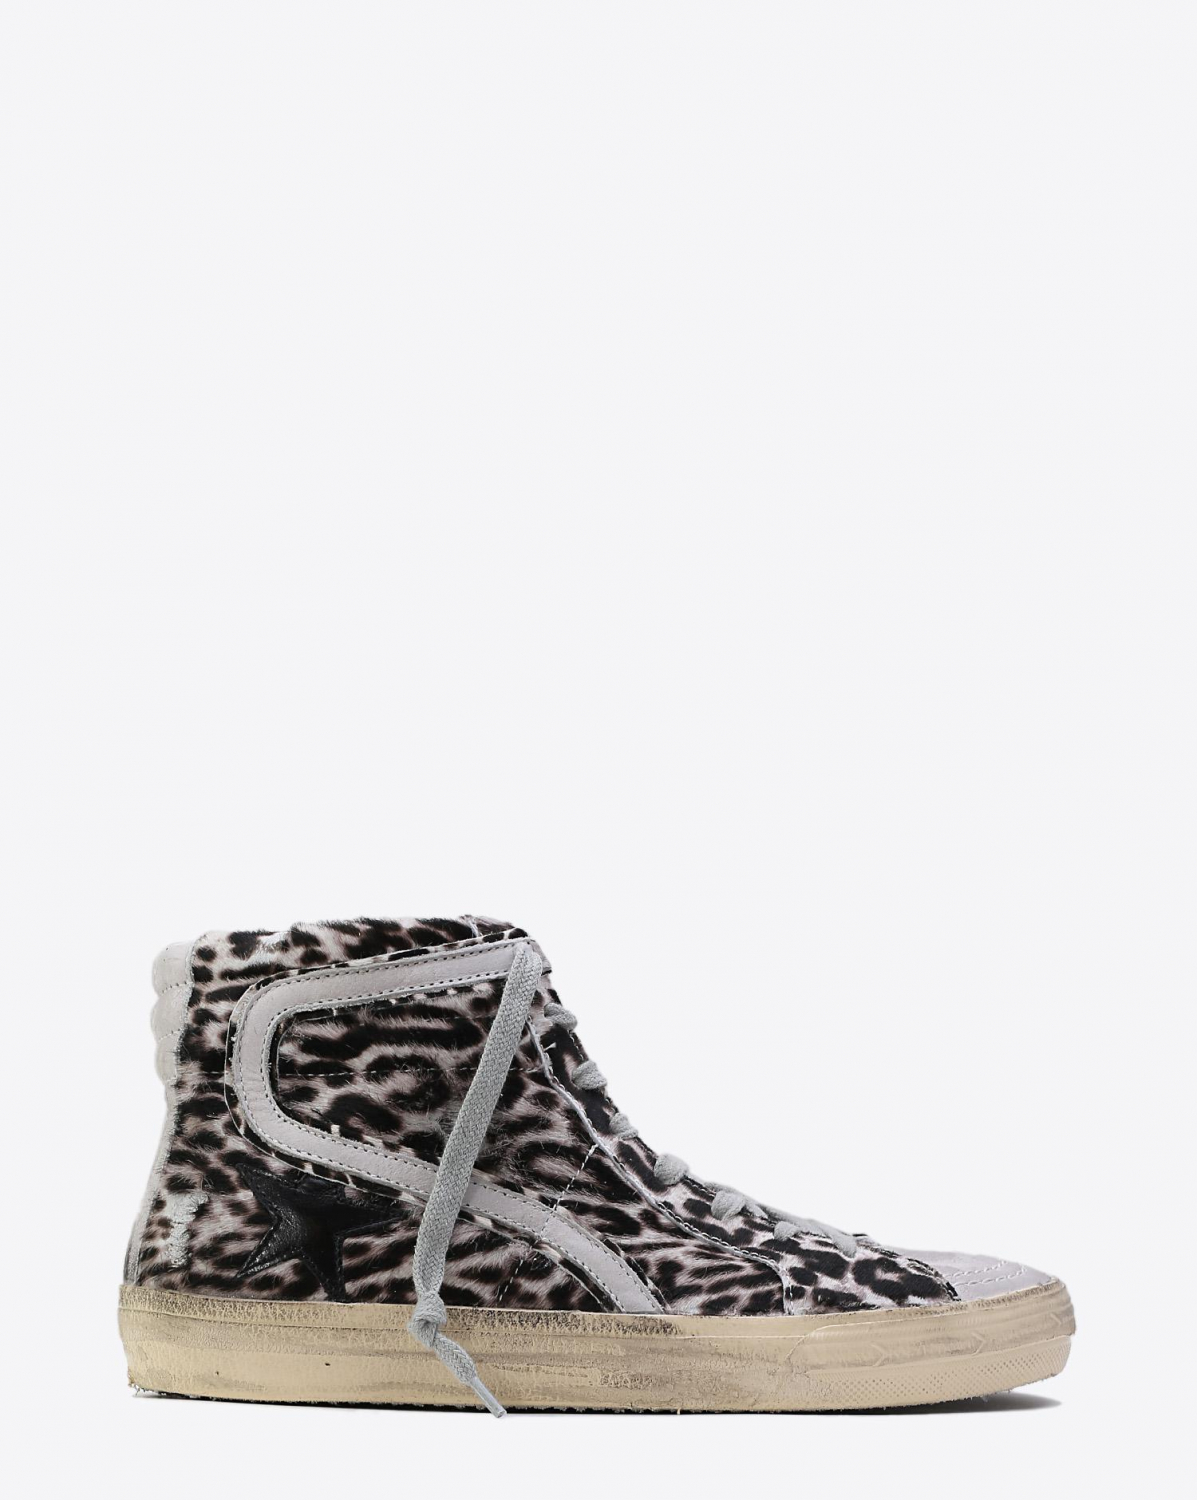 Golden Goose Woman Collection Sneakers Slide White Black - Leopard Pony